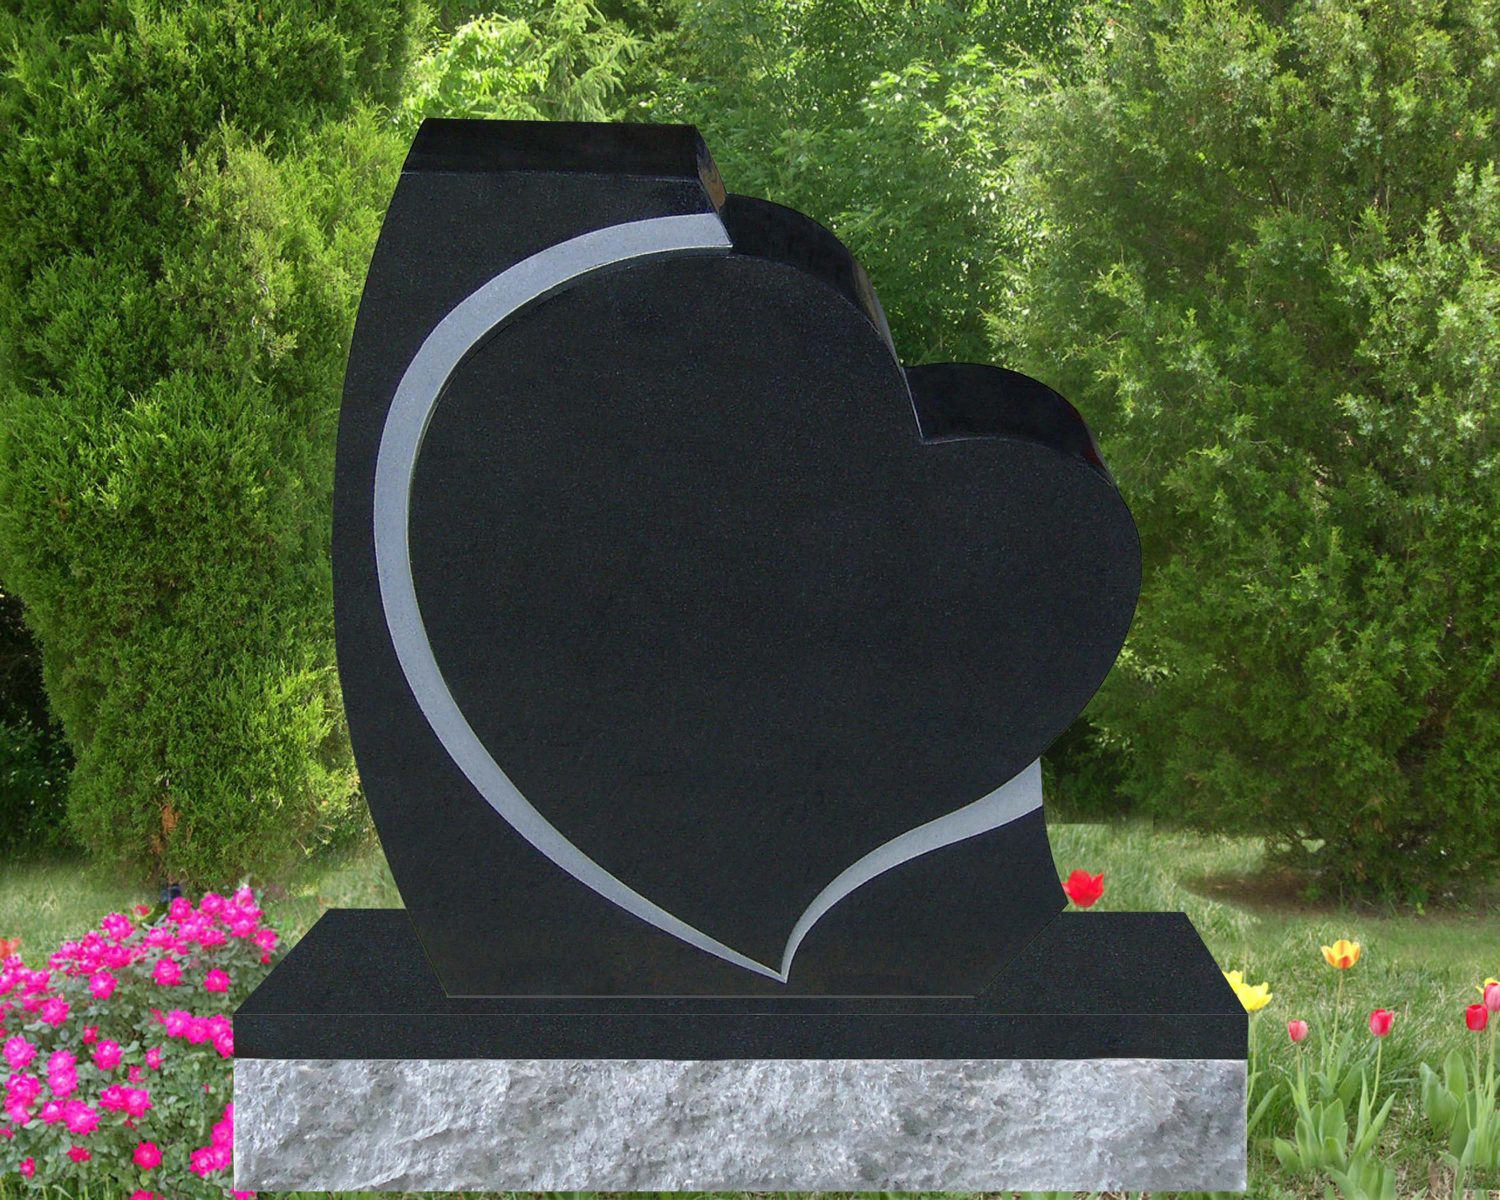 EG-17-01-433 / Jet Black / Tilted Single Heart Memorial